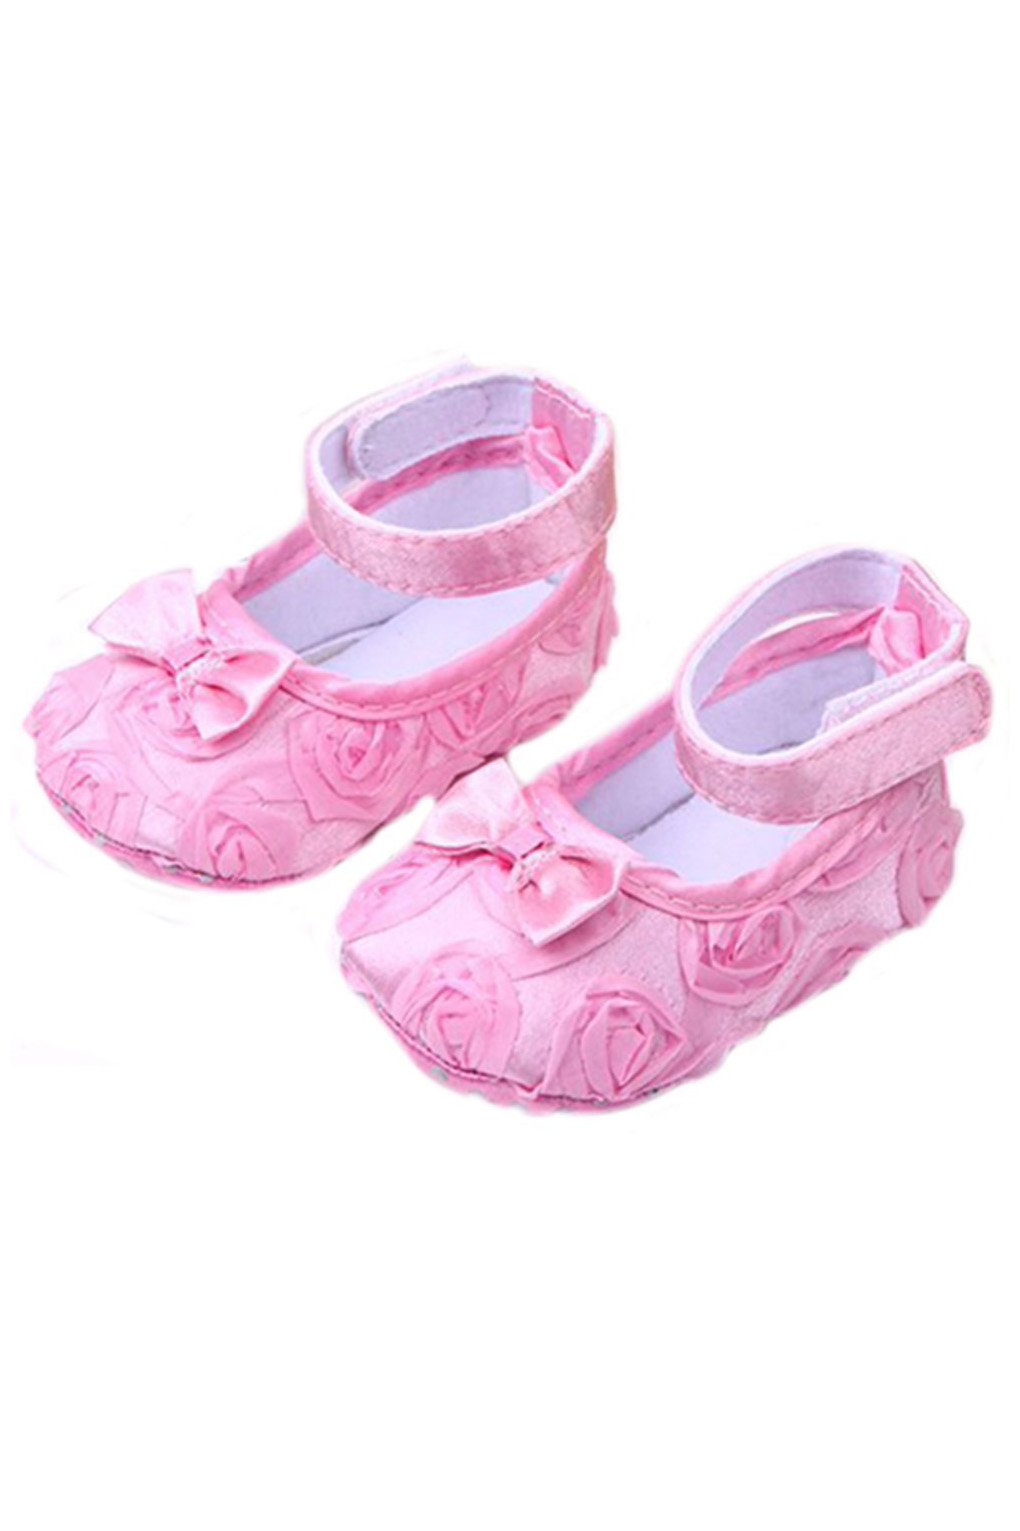 KEOL Best Sale Baby Girl Comfortable AntiSlip Princess Toddler Shoes (0-6 month, Pink)